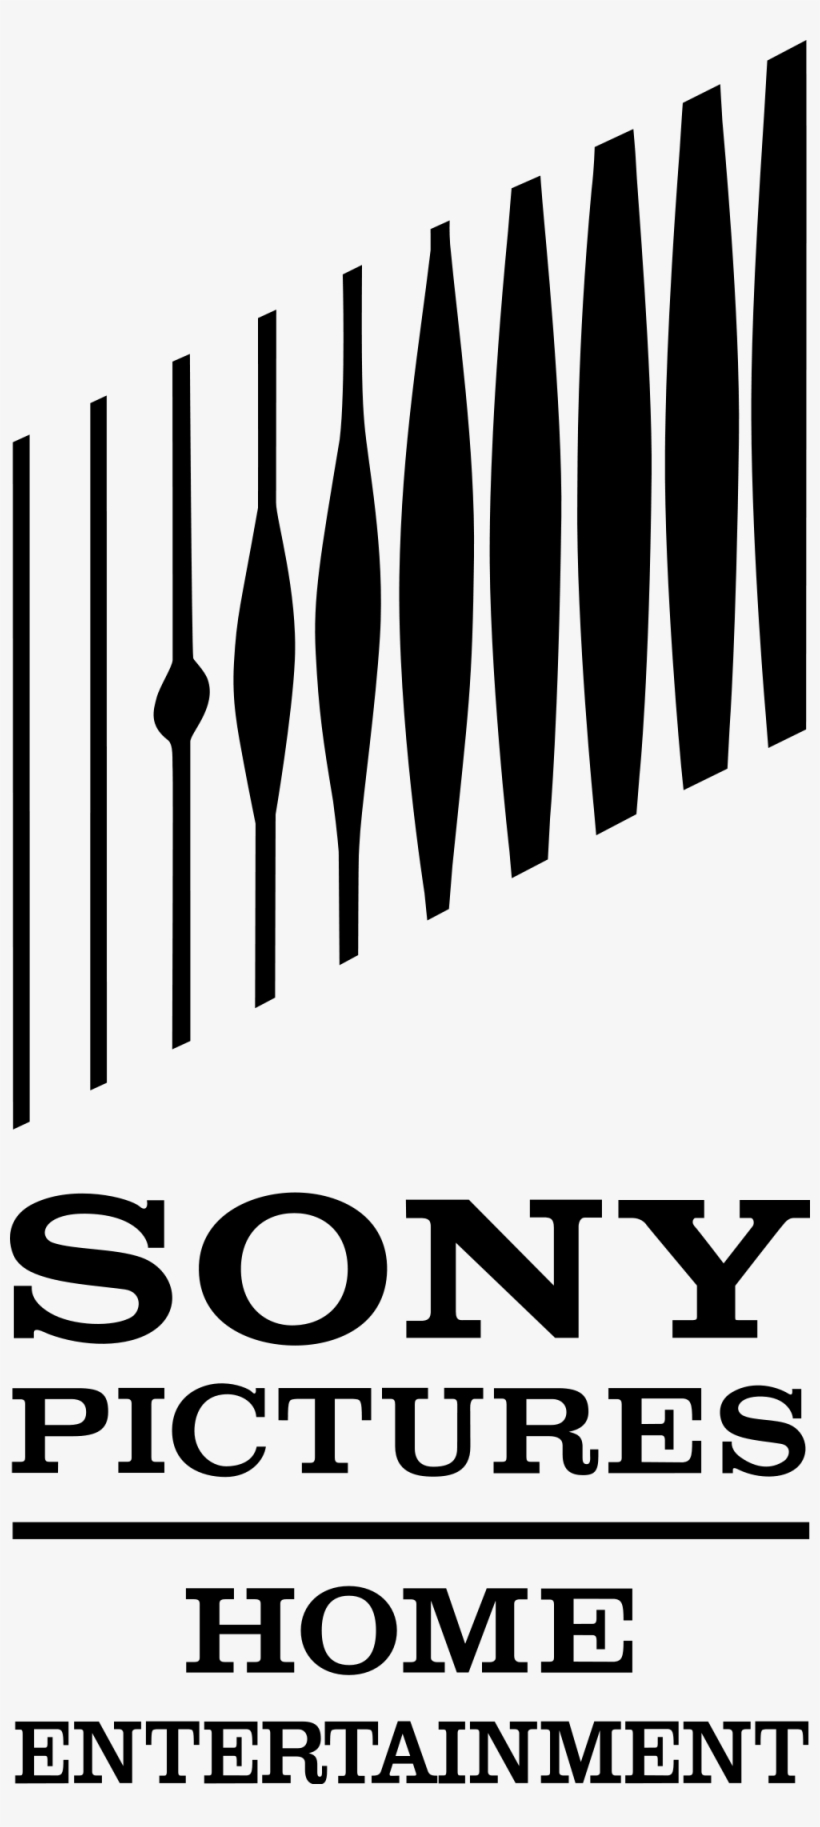 1000px Sony Pictures Home Entertainment Logo Svg Sony Pictures Home Logo 1000x2180 Png Download Pngkit